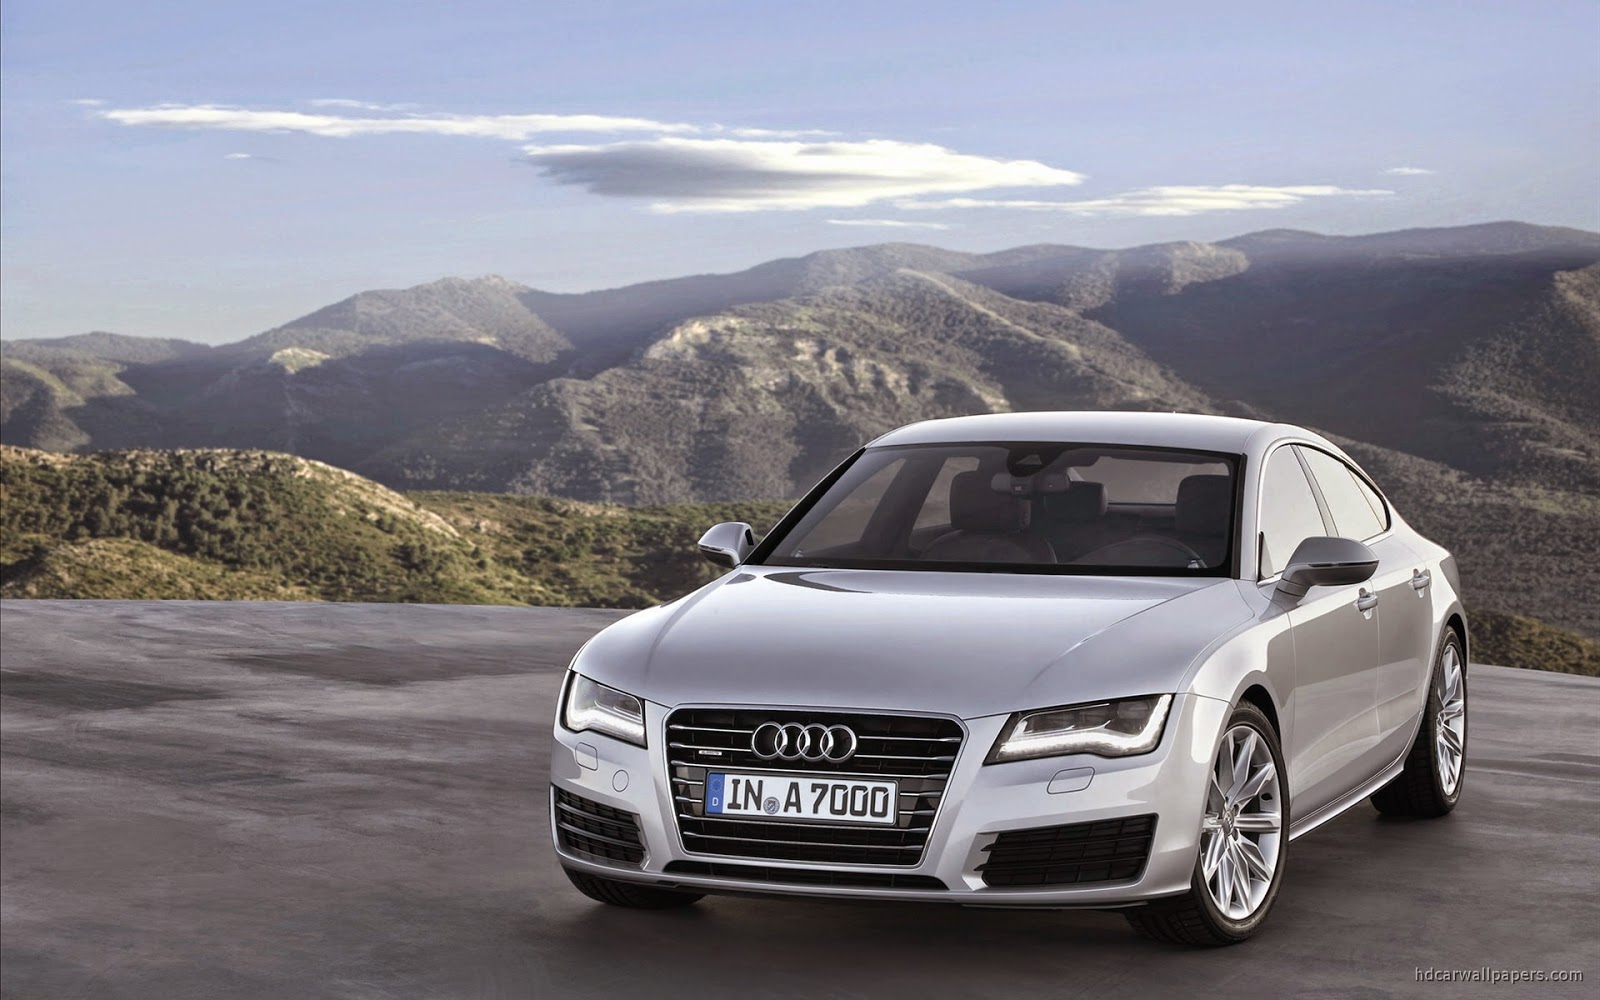 Audi Cars HD Wallpapers for mobile